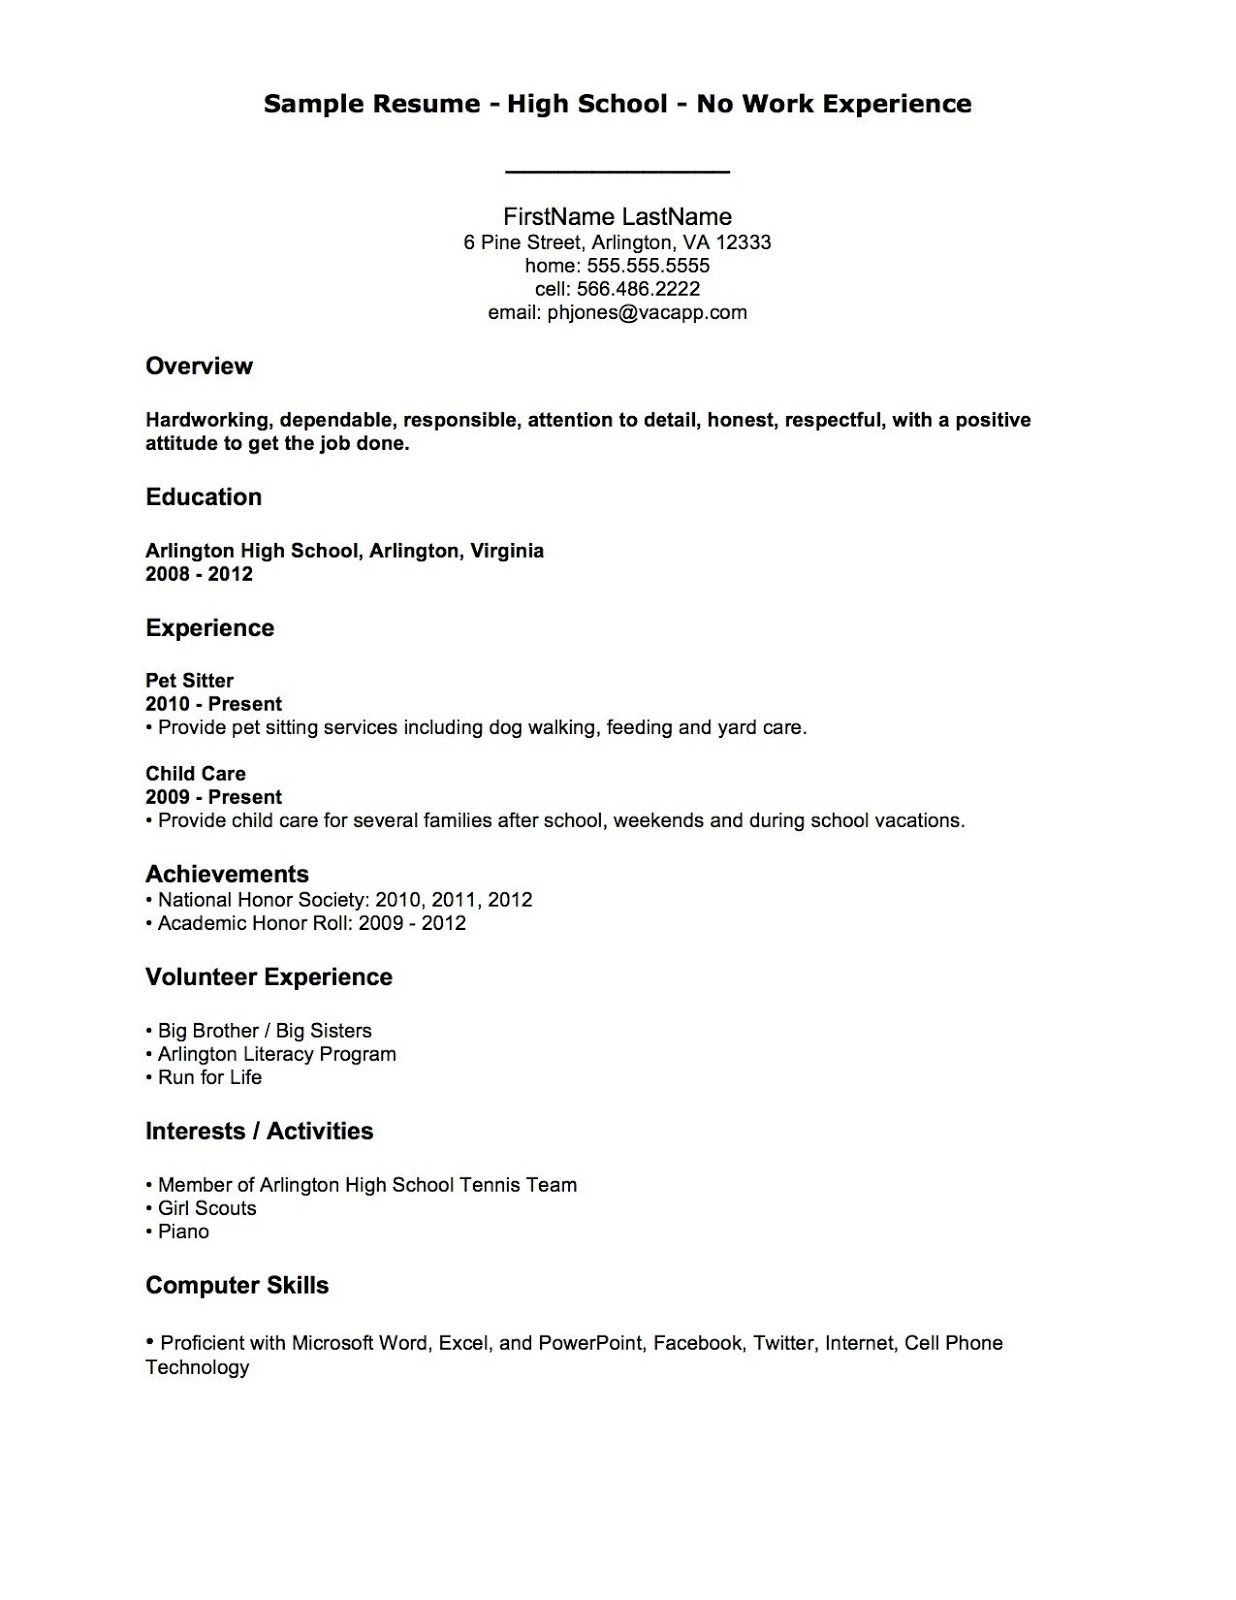 Sample Resumes For Jobs